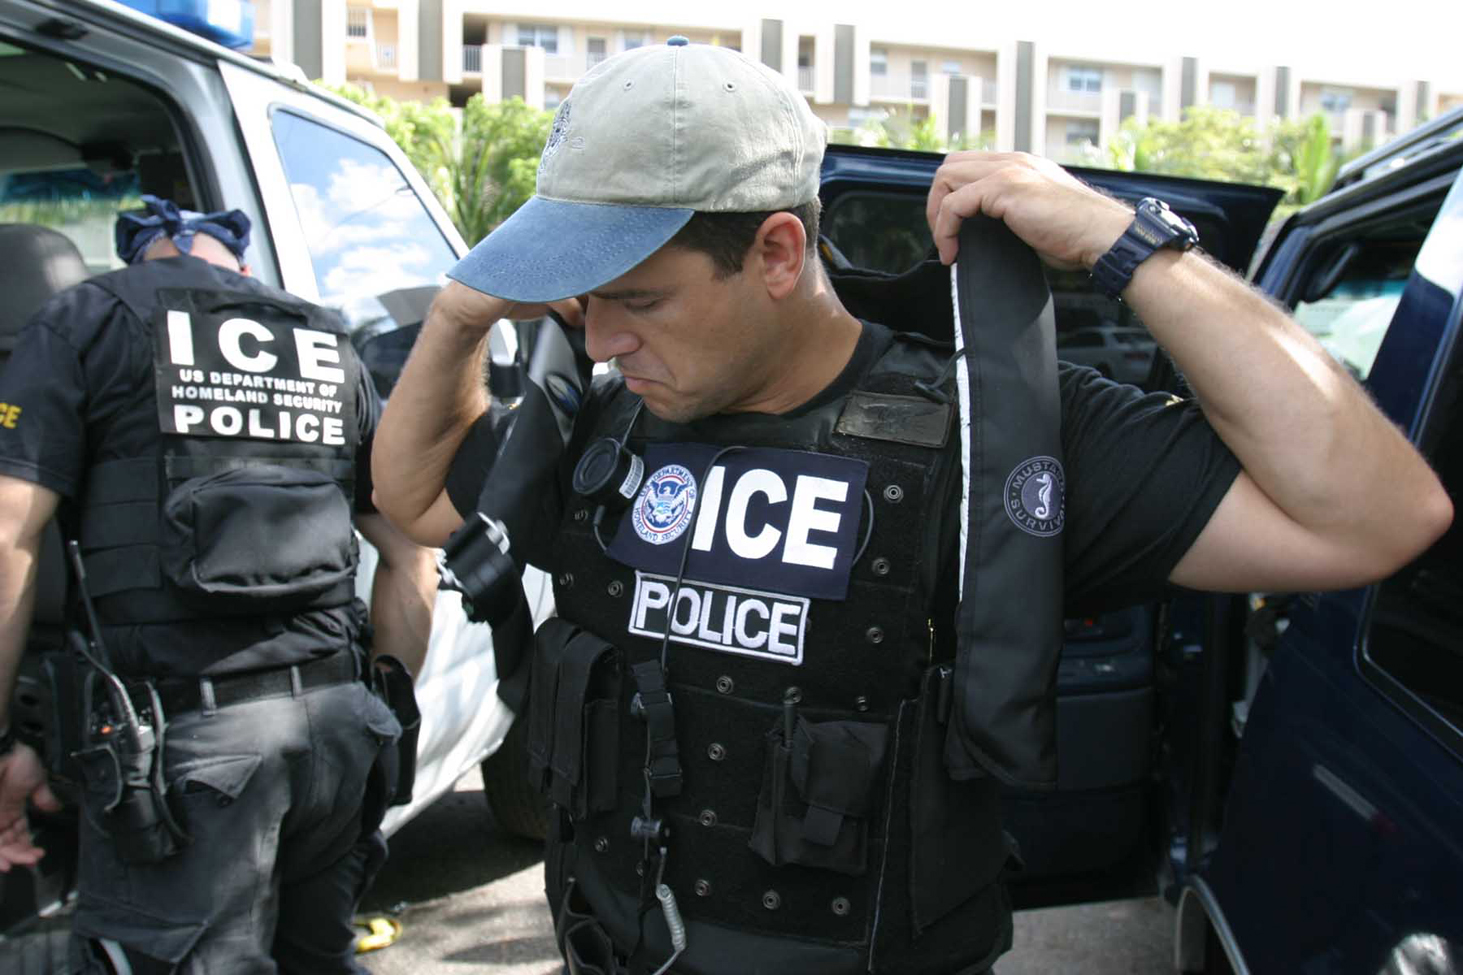 United States arrests nearly 200 Iraqis in deportation sweep